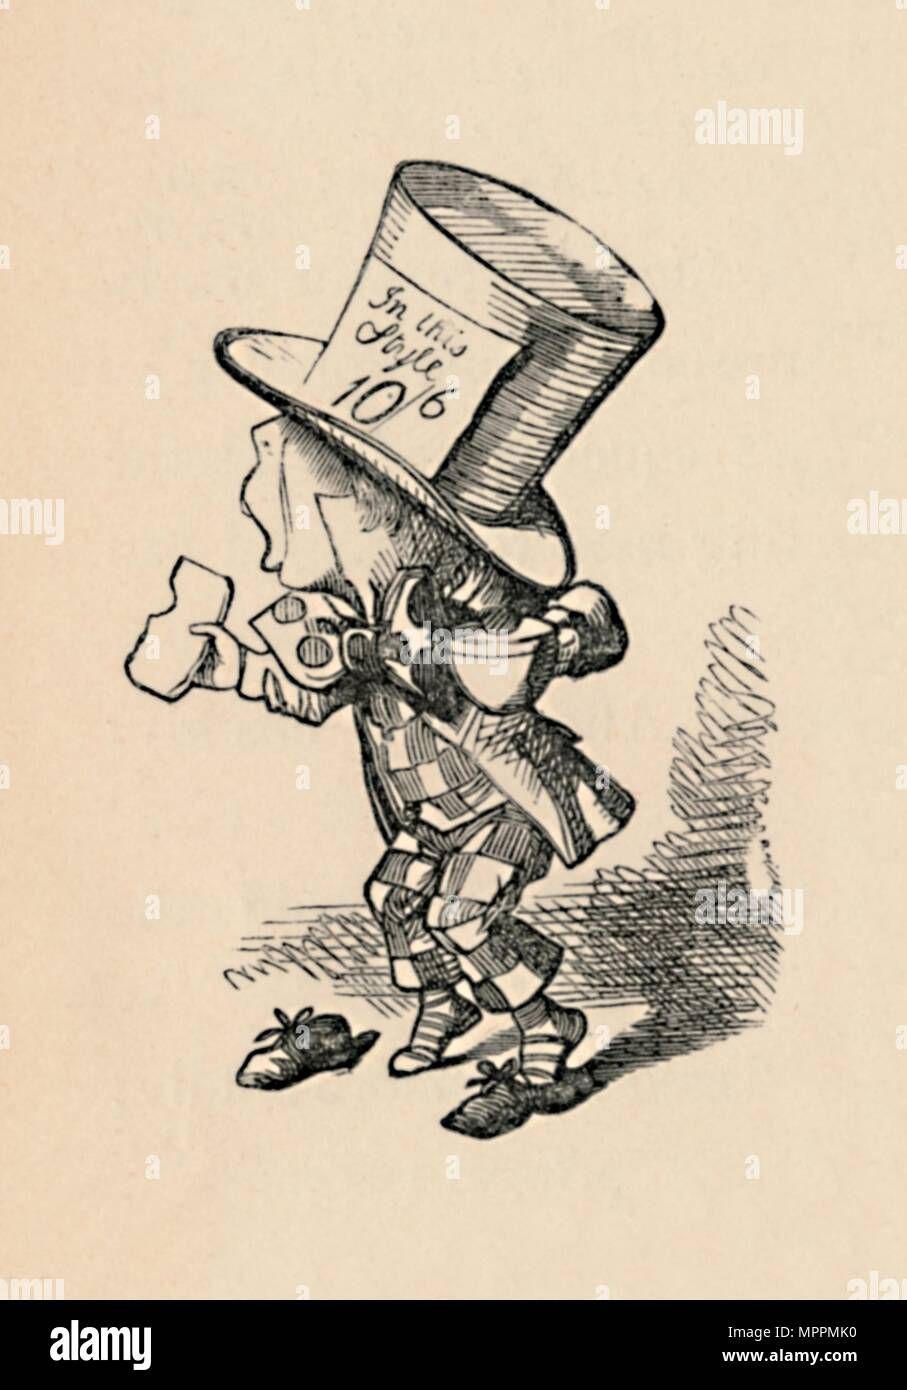 'The Mad Hatter in Court', 1889. Artist: John Tenniel. - Stock Image